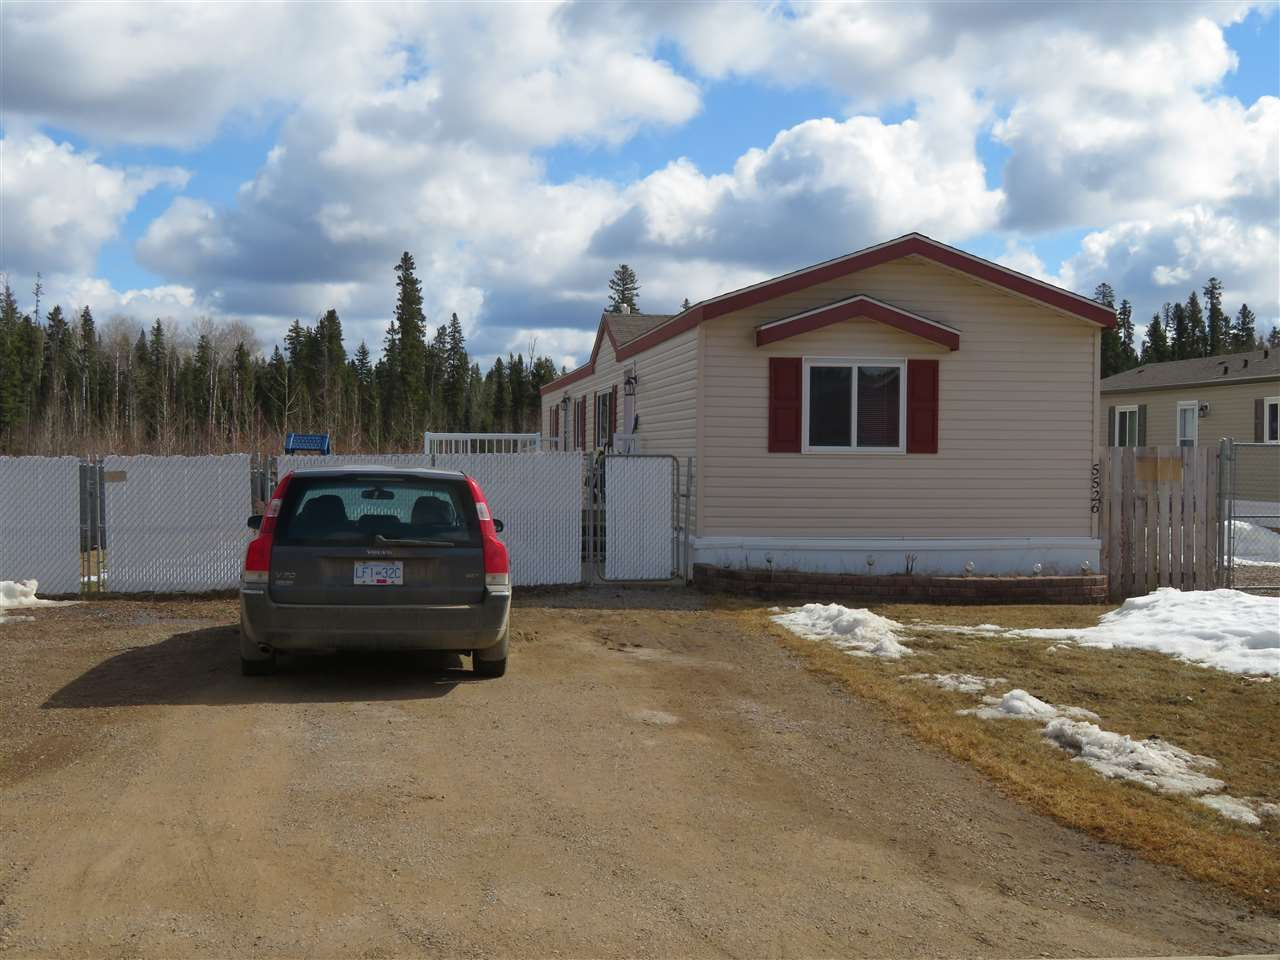 Main Photo: 5526 PINE Crescent in Fort Nelson: Fort Nelson -Town Manufactured Home for sale (Fort Nelson (Zone 64))  : MLS®# R2477622